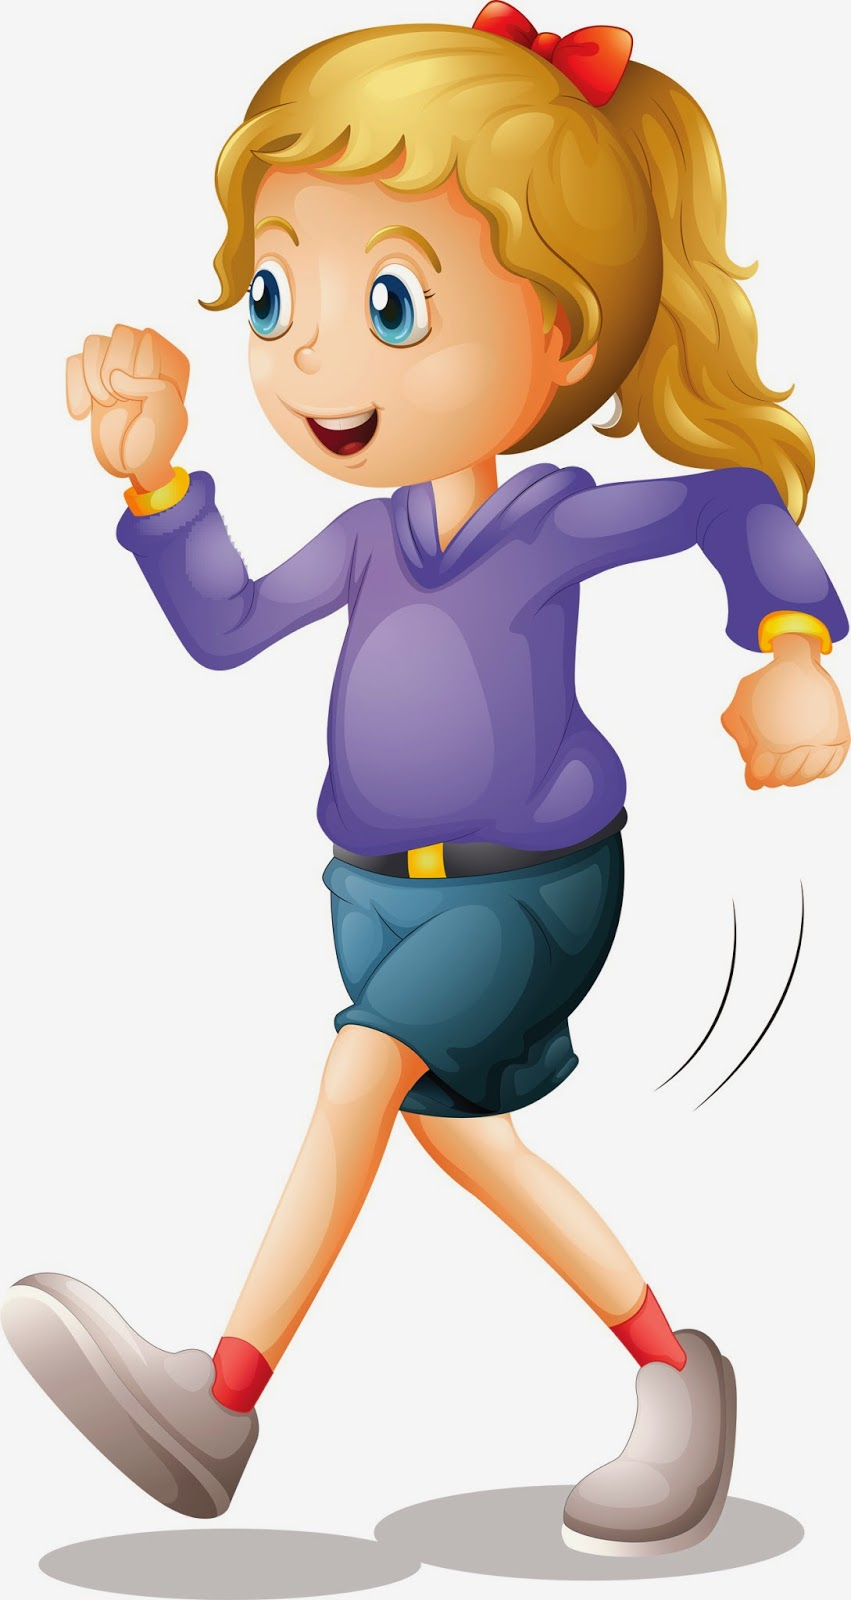 Clipart Of A Girl Walking.